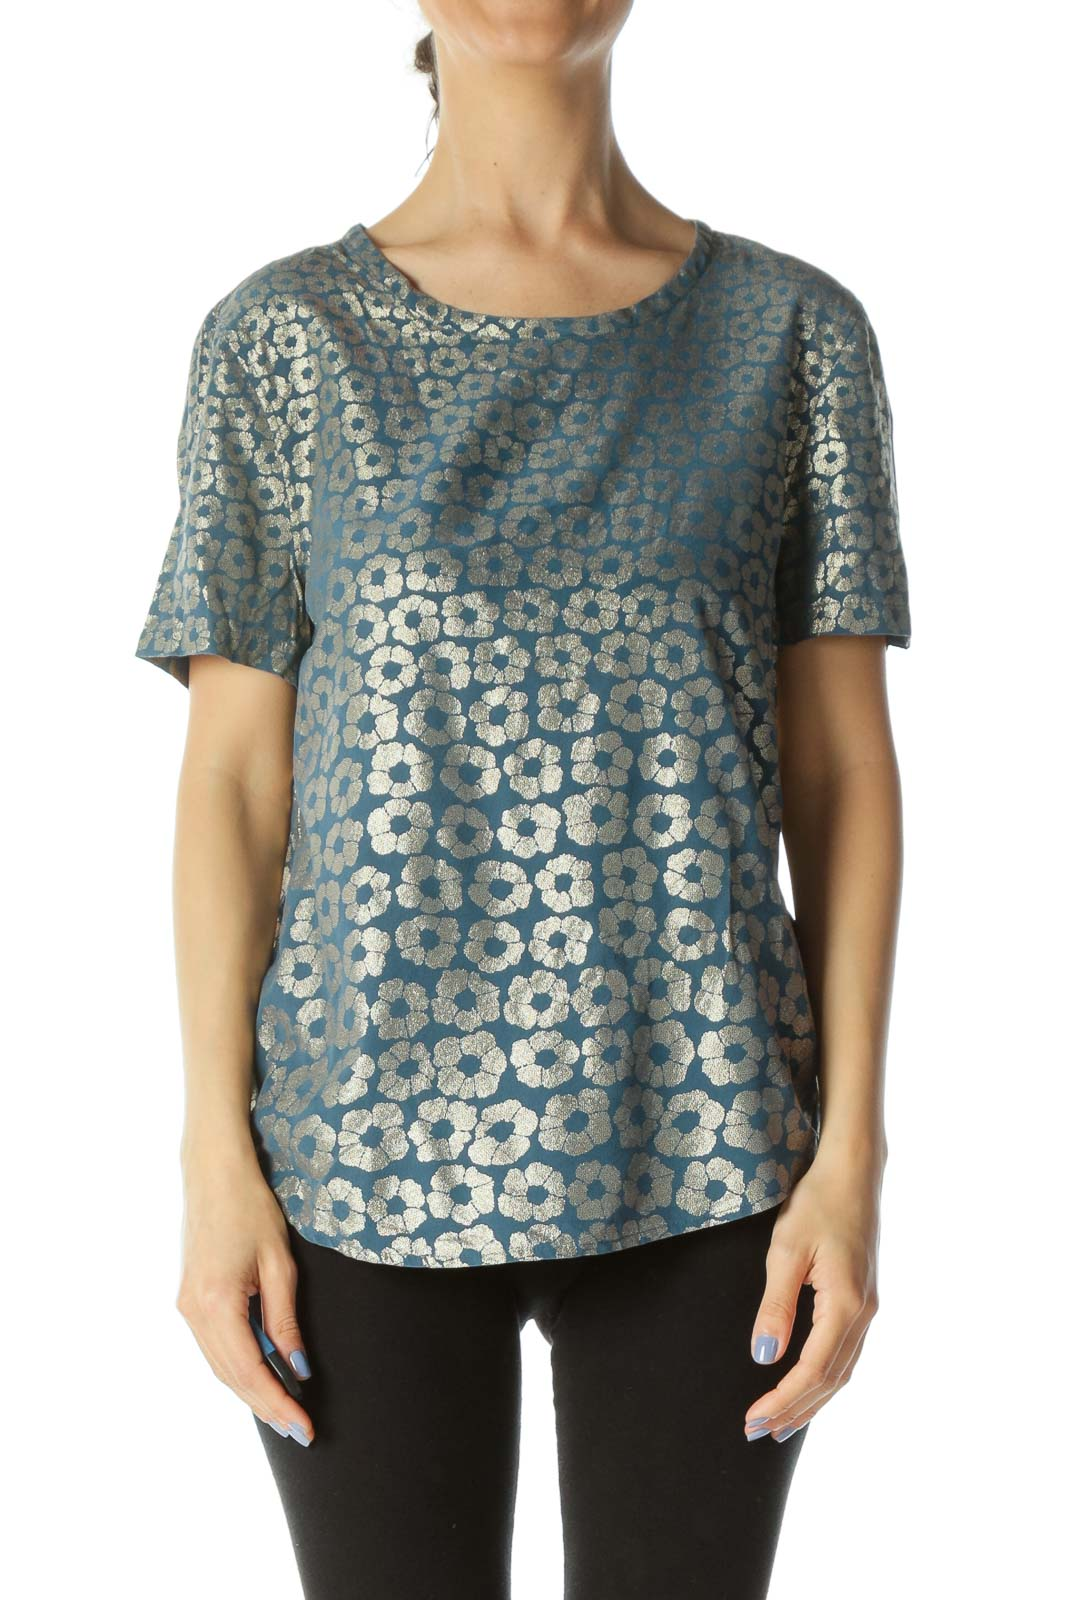 Teal-Blue/Gold Short-Sleeve Round-Neck Floral-Print Top Front